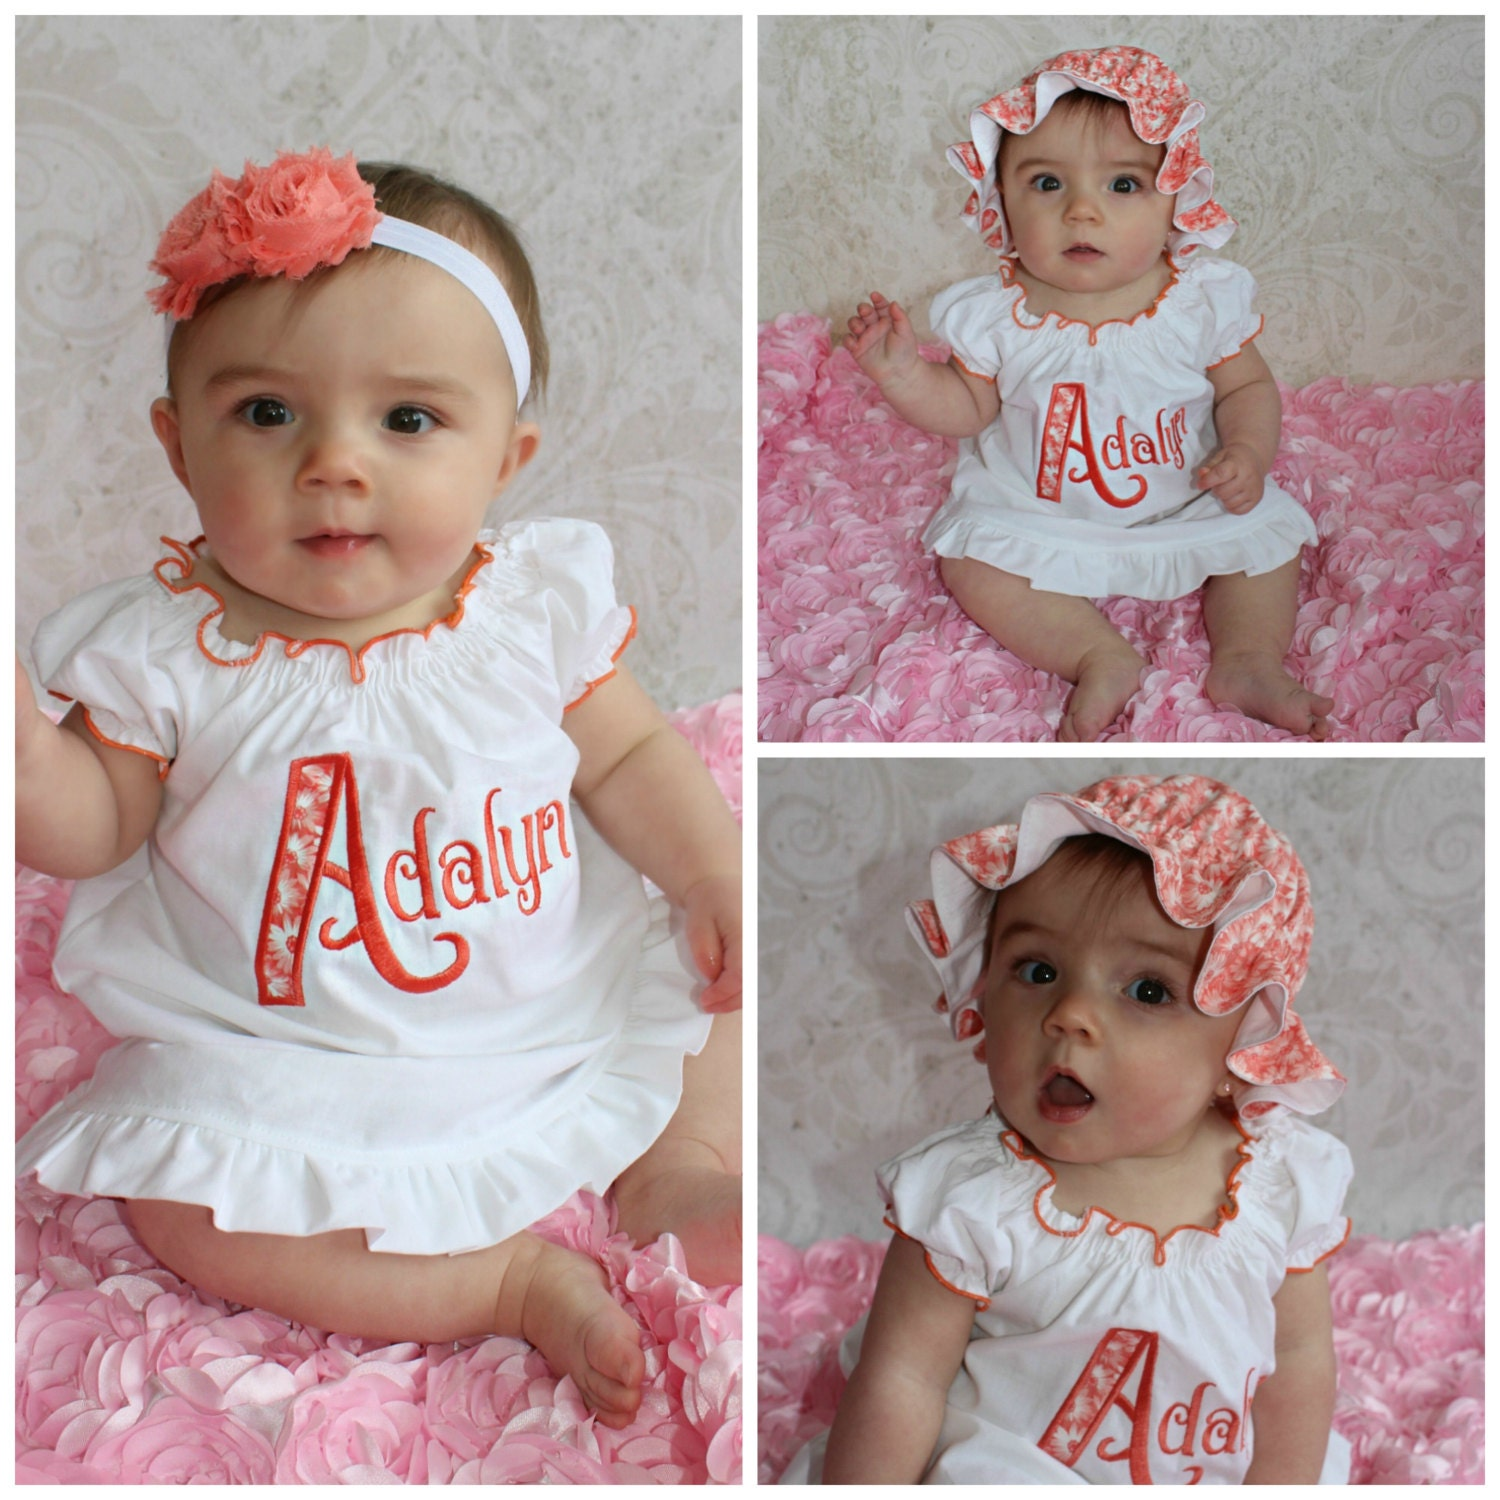 Cute Baby Clothes Baby Dress Personalized Girl Newborn Baby